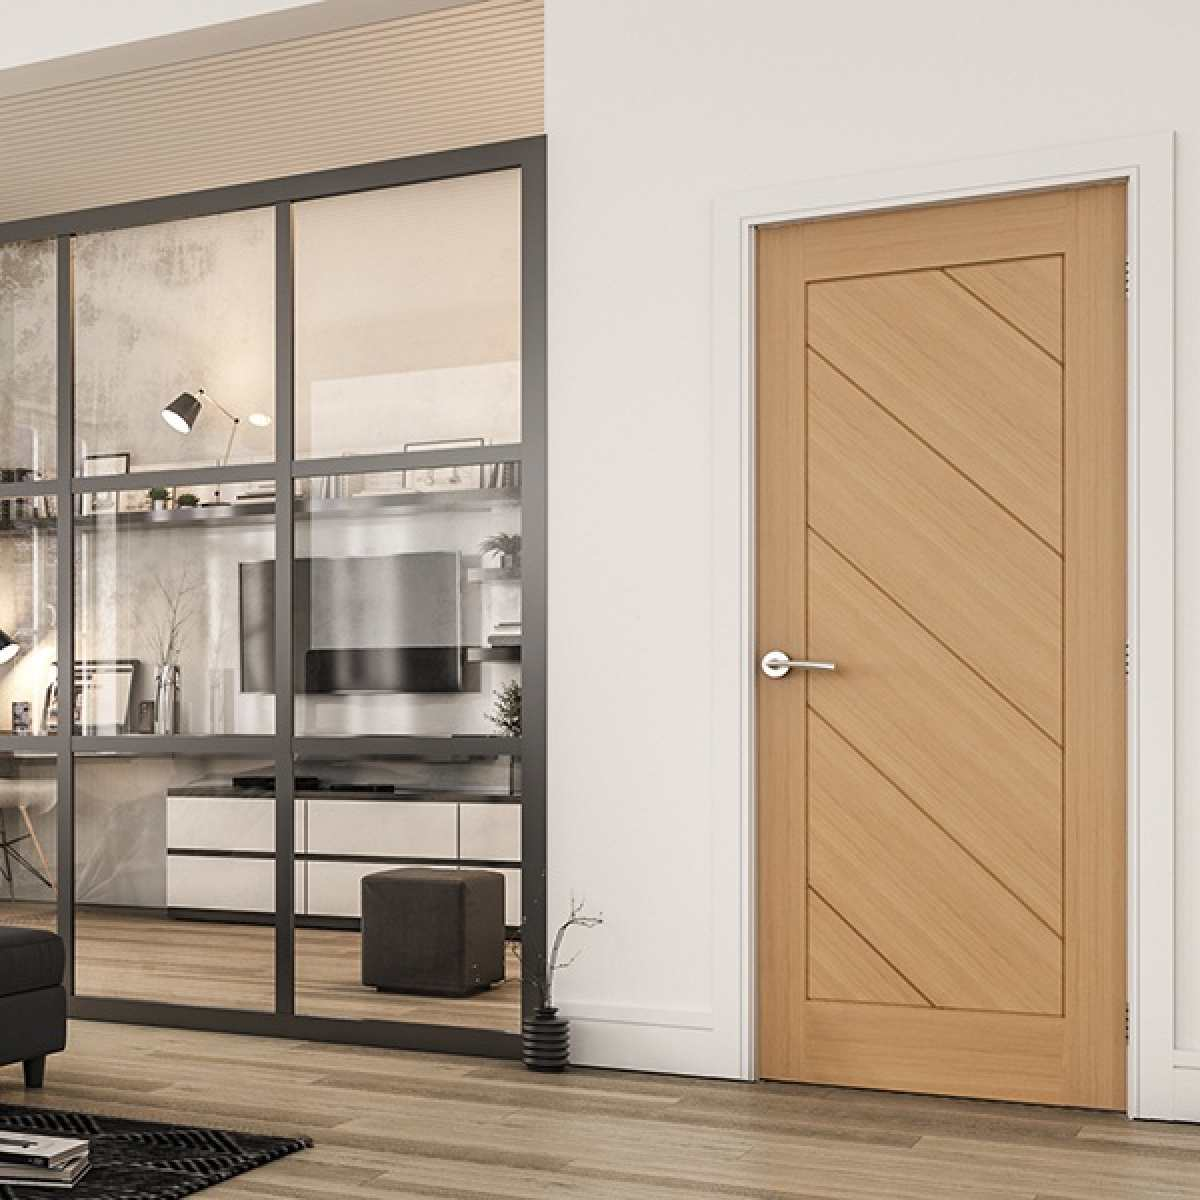 Torino oak interior door lifestyle websters Image by Websters Timber